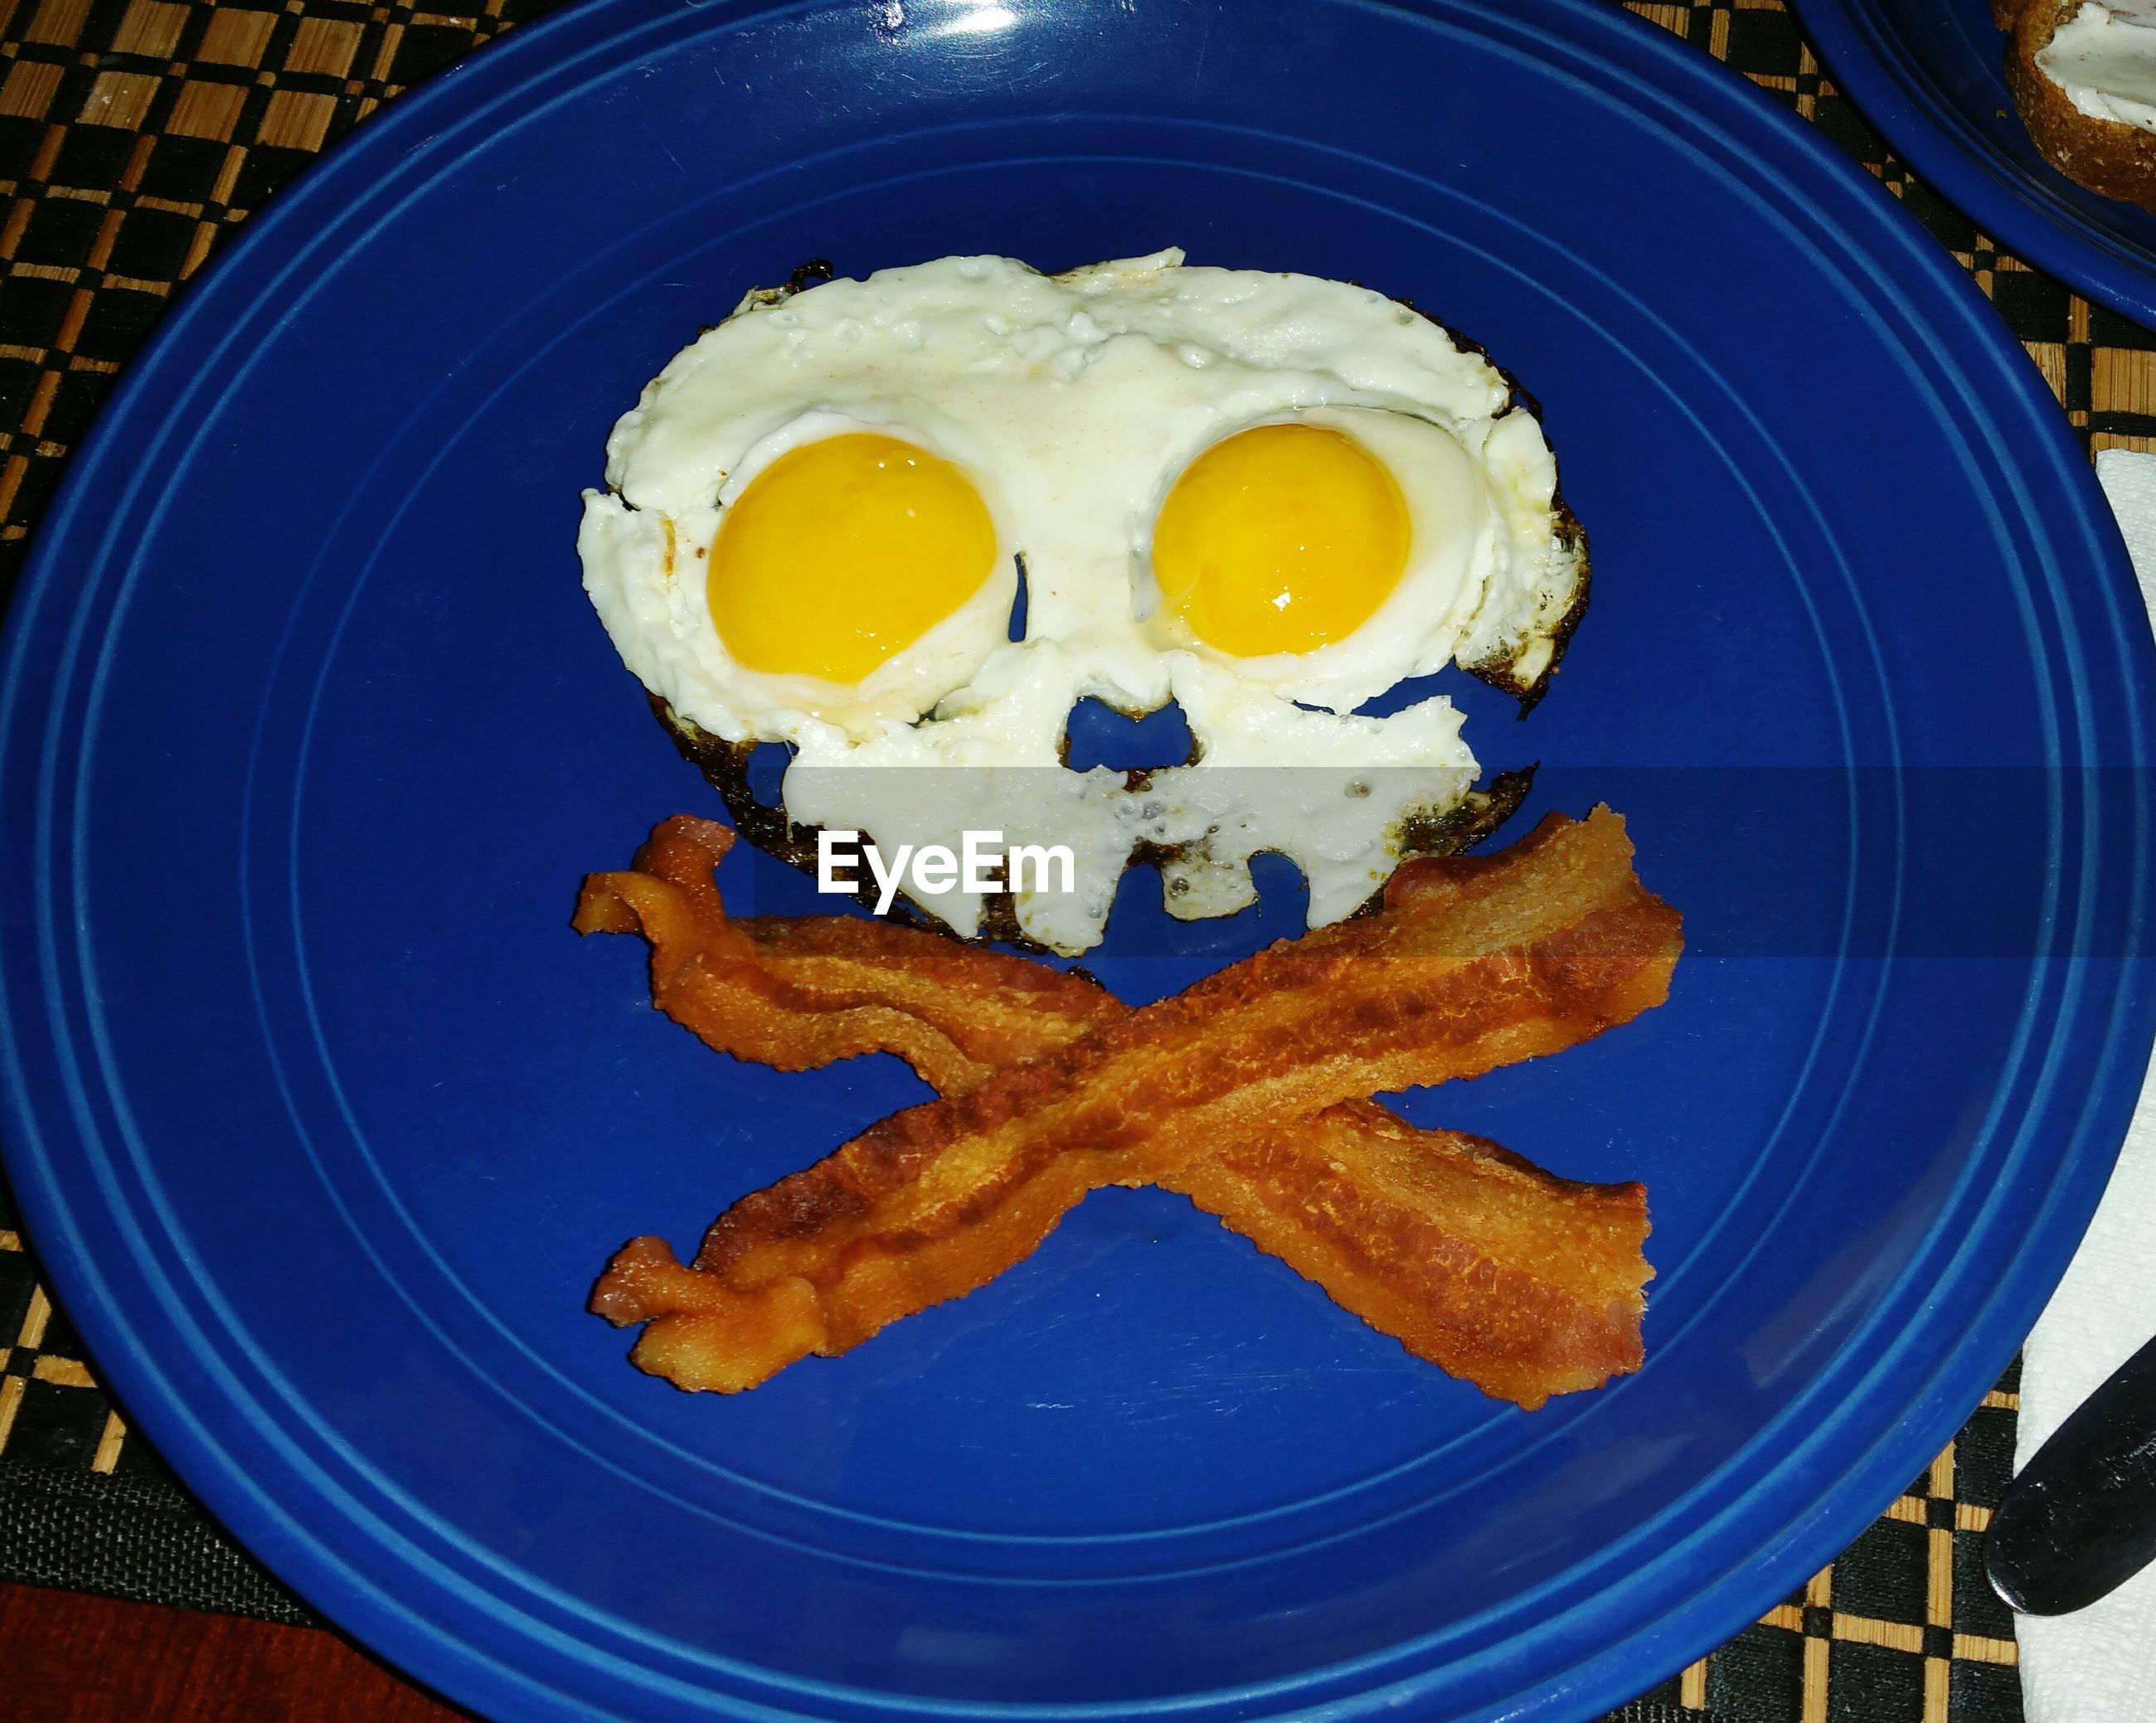 Eggs and bacon shaped as skull